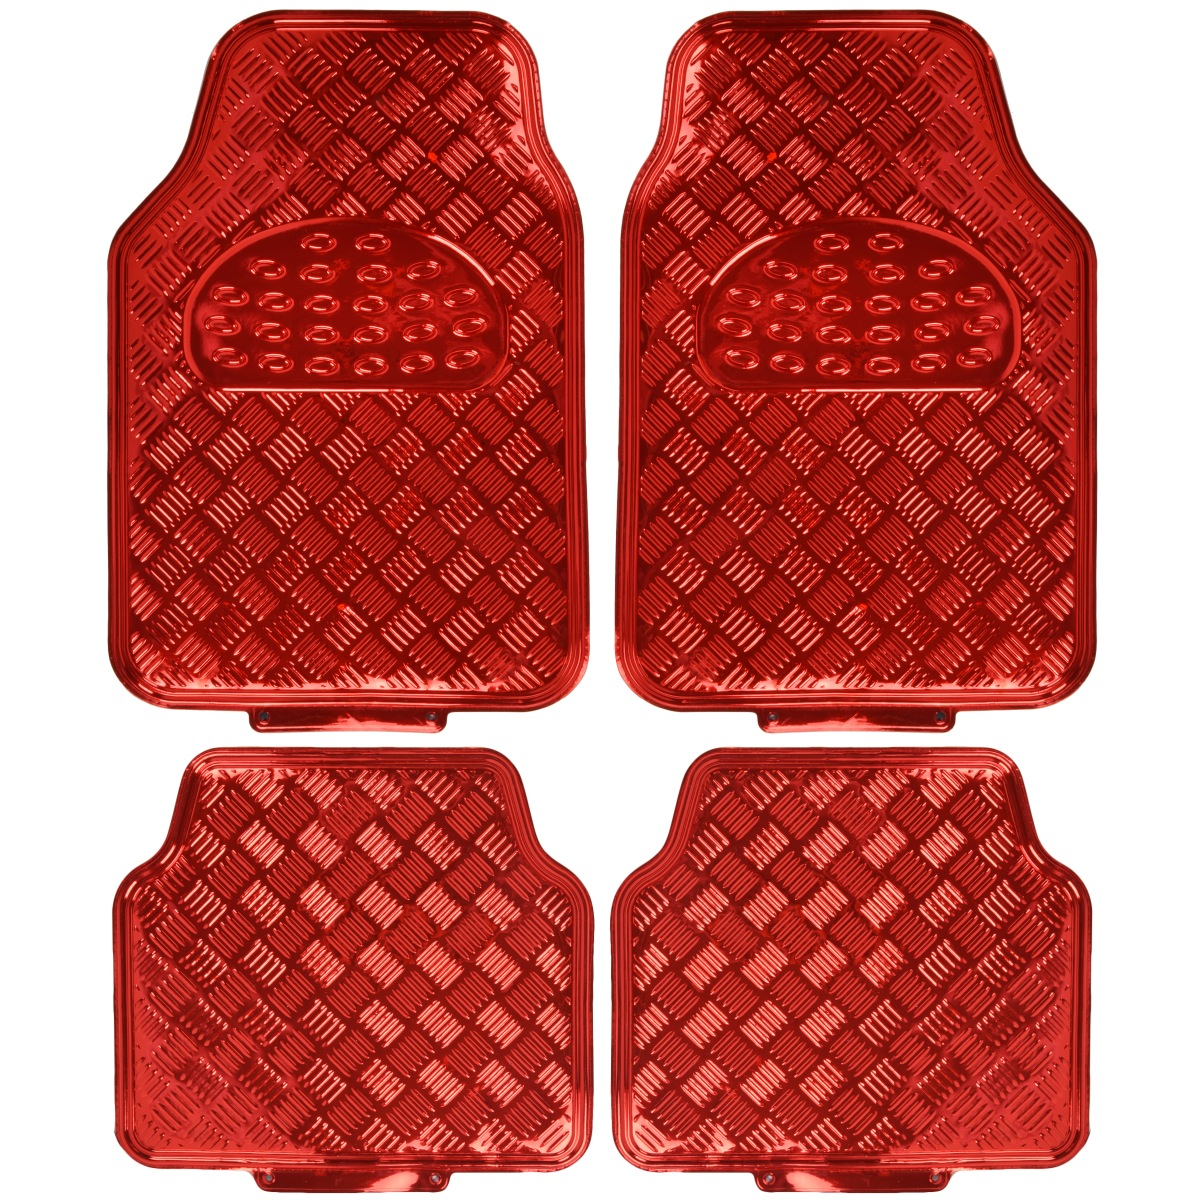 Rubber mats ebay - Image Is Loading Red Metallic Rubber Floor Mats Set 4pc Car